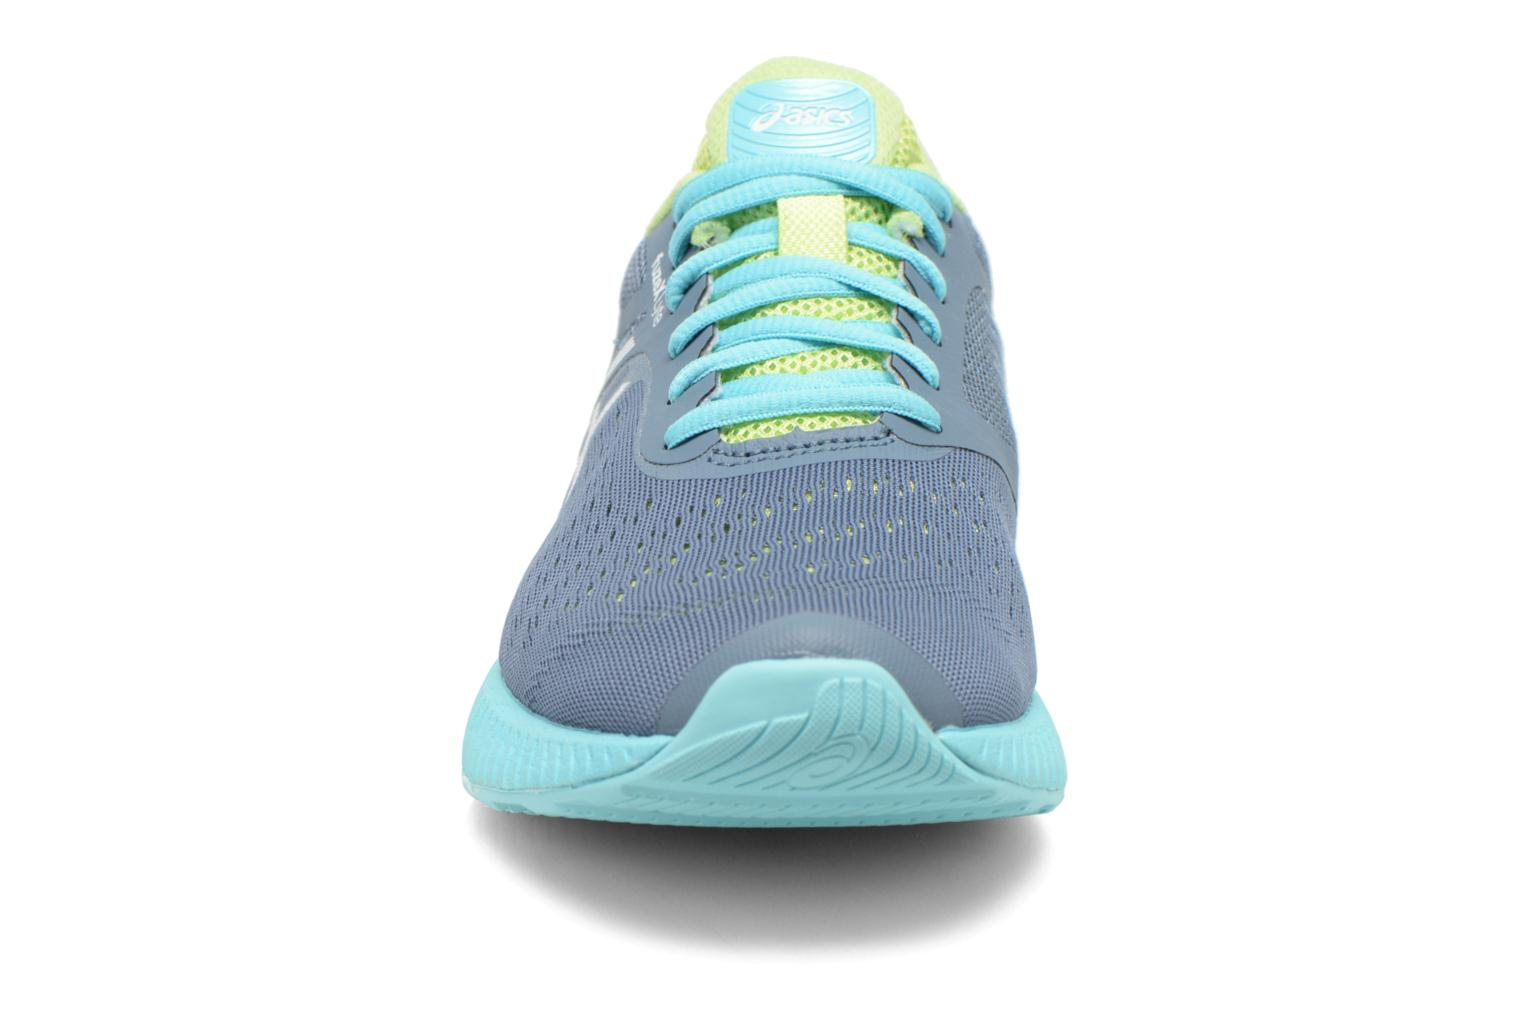 Fuzex Lyte Blue Mirage/White/Sharp Green